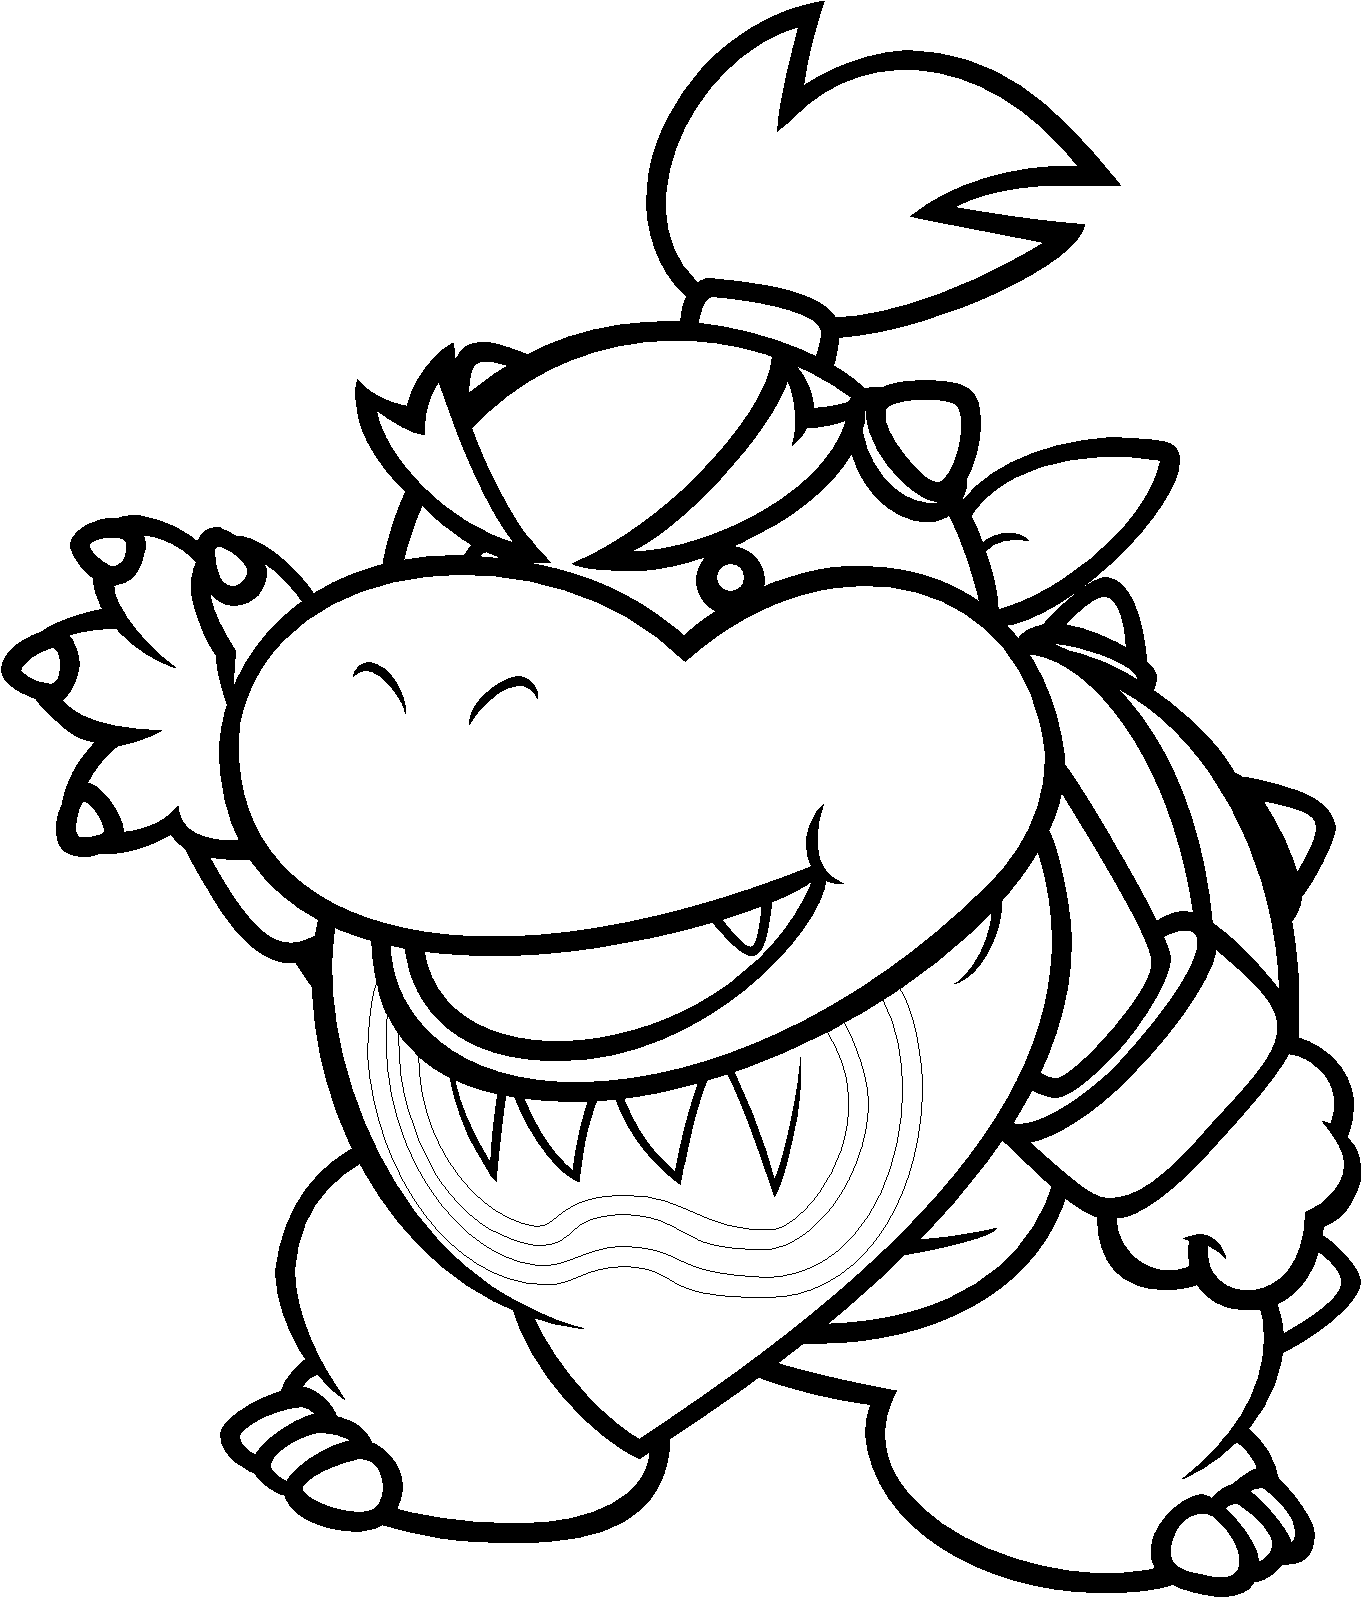 Dark bowser coloring pages sketch coloring page for Bowser jr coloring pages printable